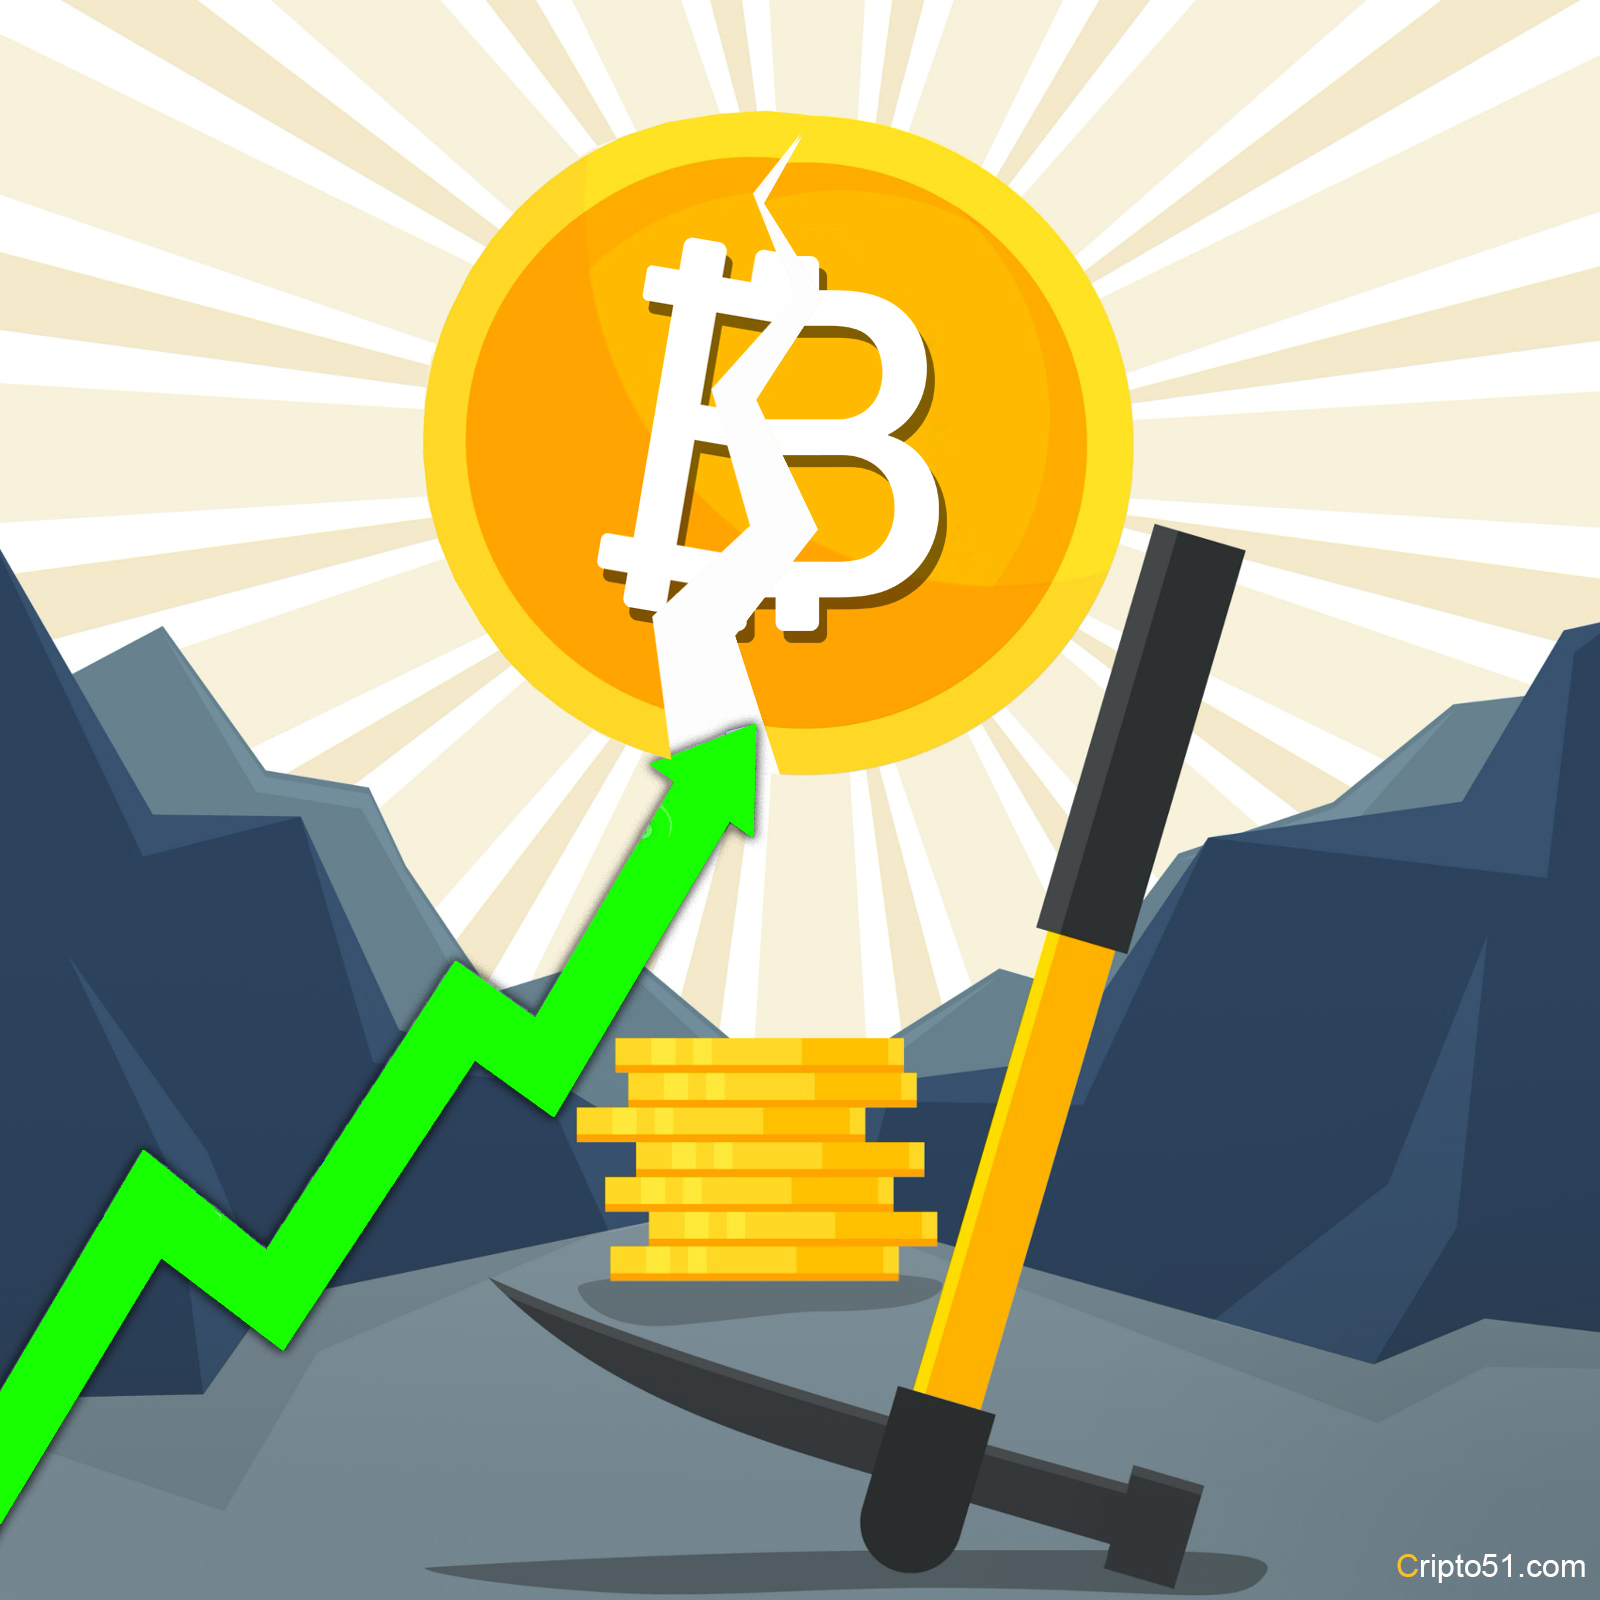 The effect of halving will raise the price of bitcoin